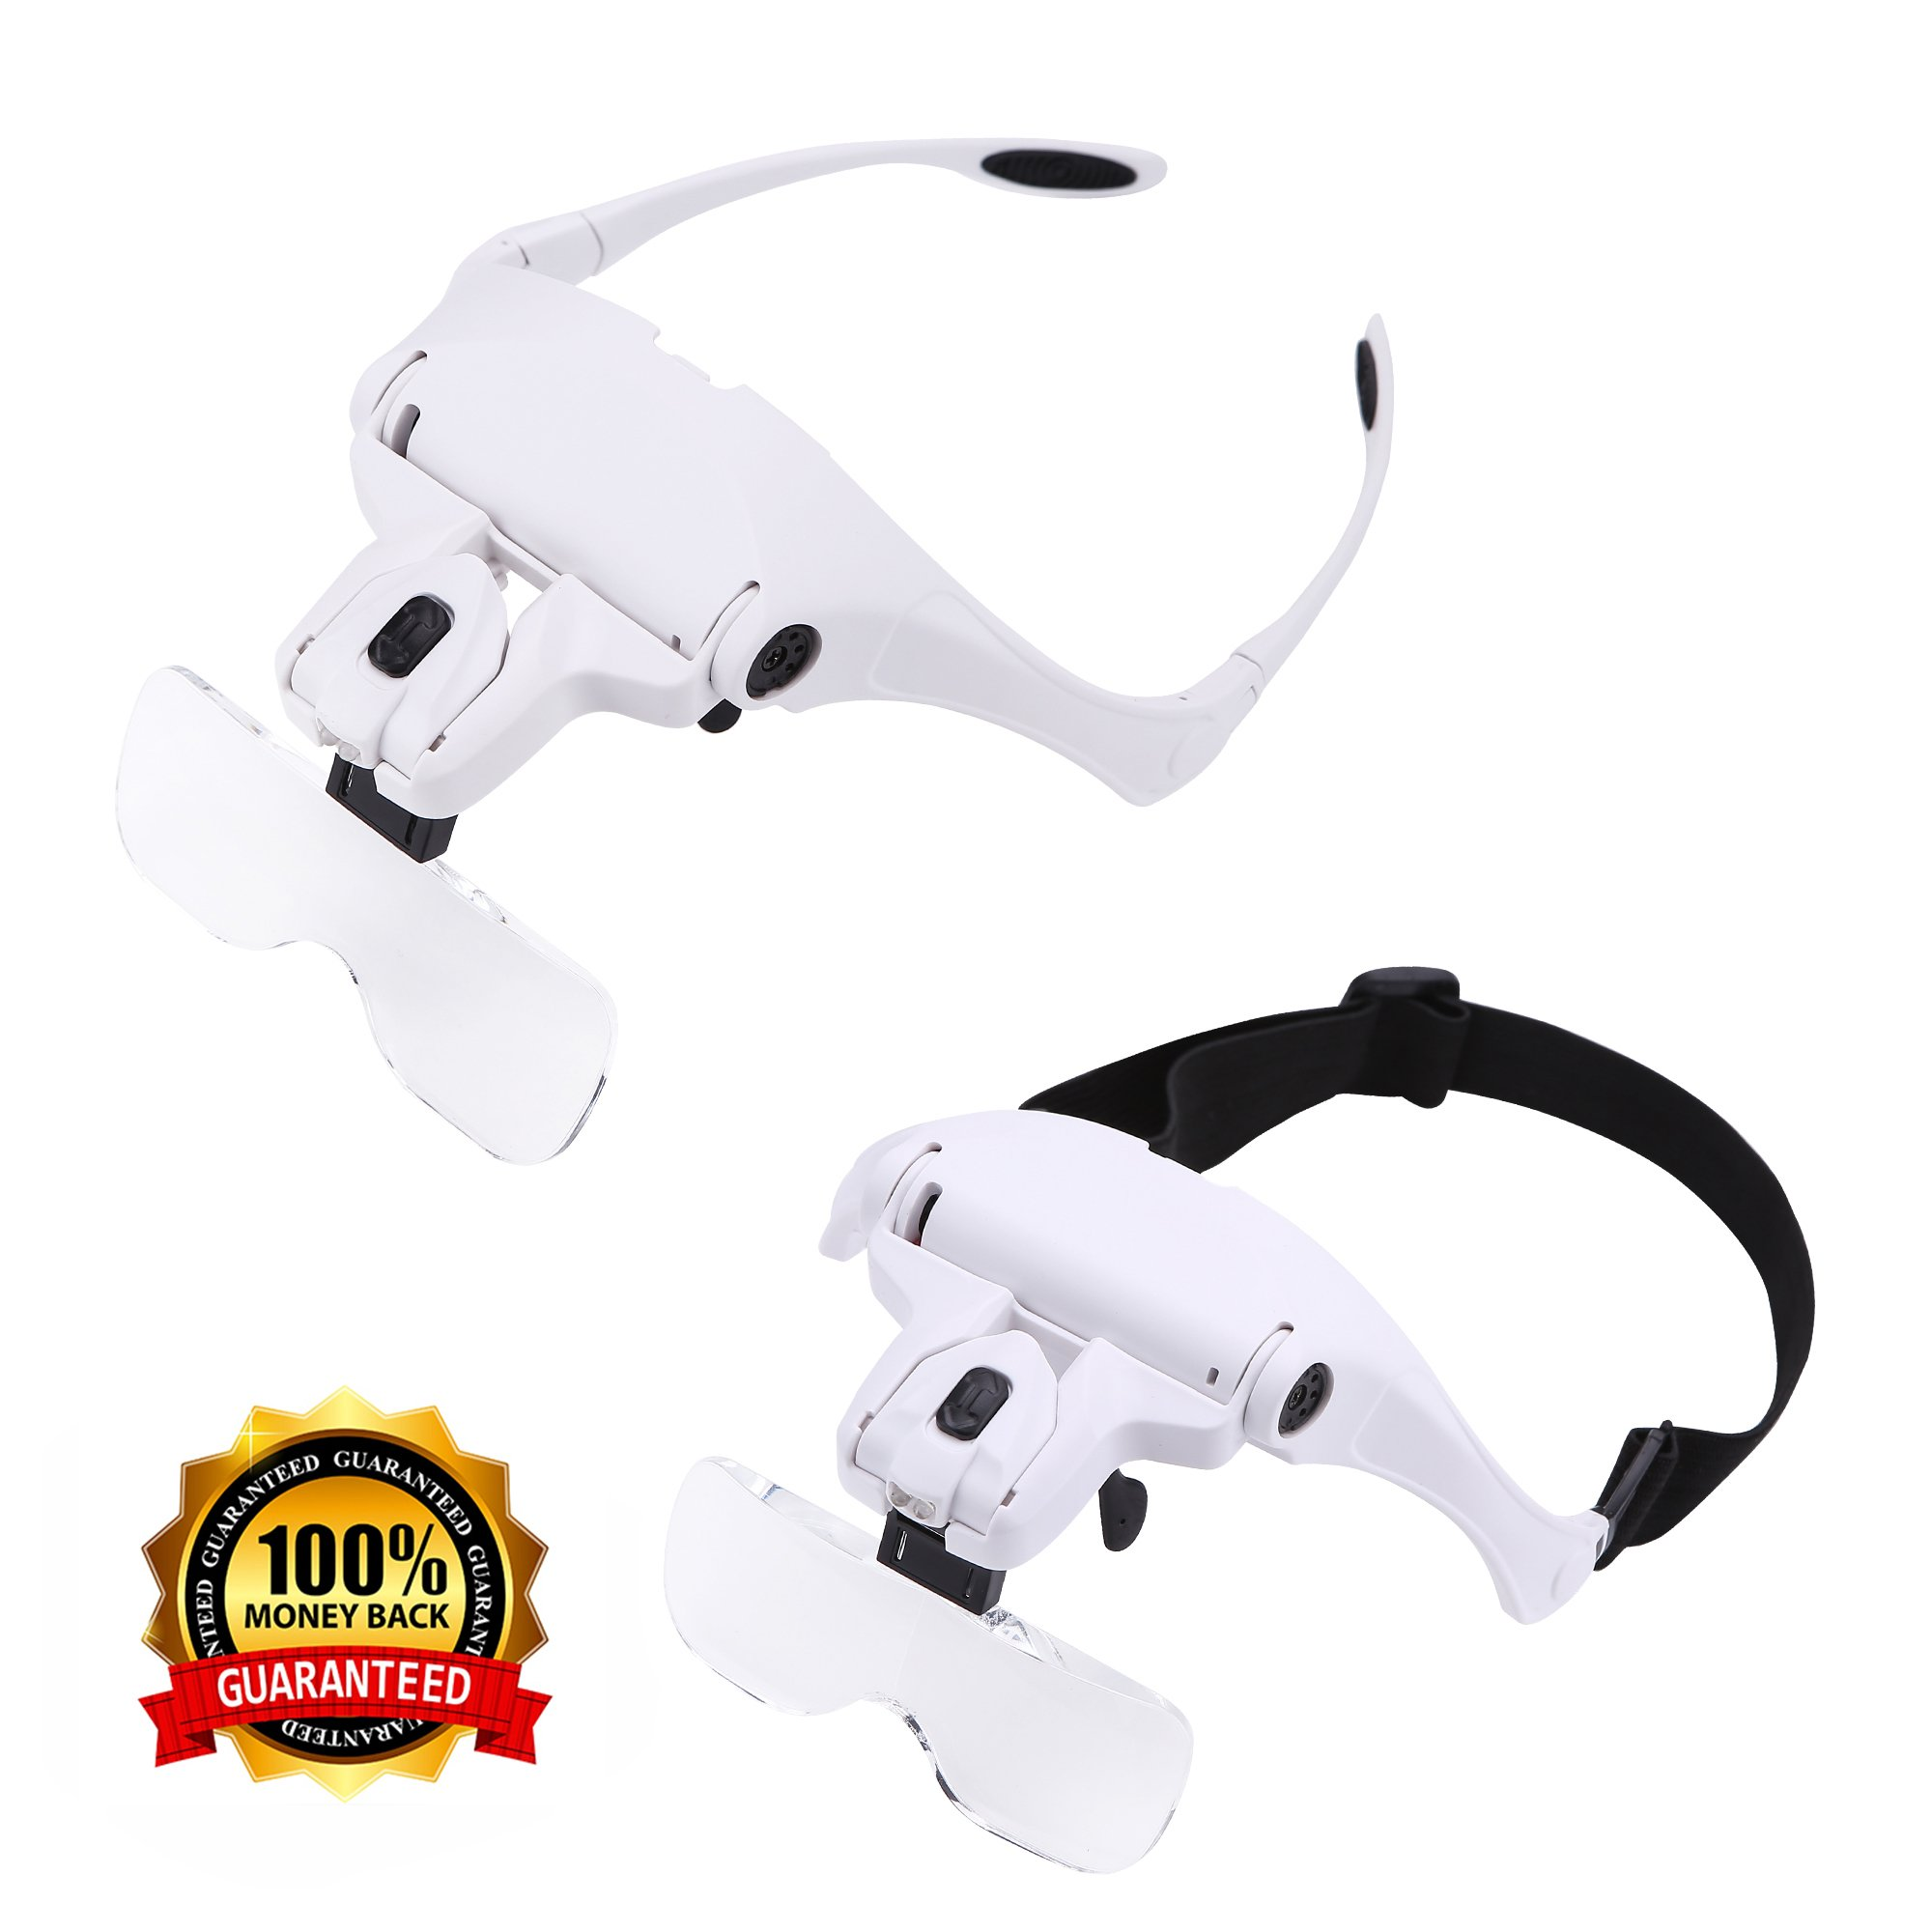 Headband Mount Magnifier LED Illuminated Head Magnifying Glass Jeweler's Loupe Light Bracket Interchangeable 5 Replaceable Lenses:1.0X/1.5X/2.0X/2.5X/3.5X